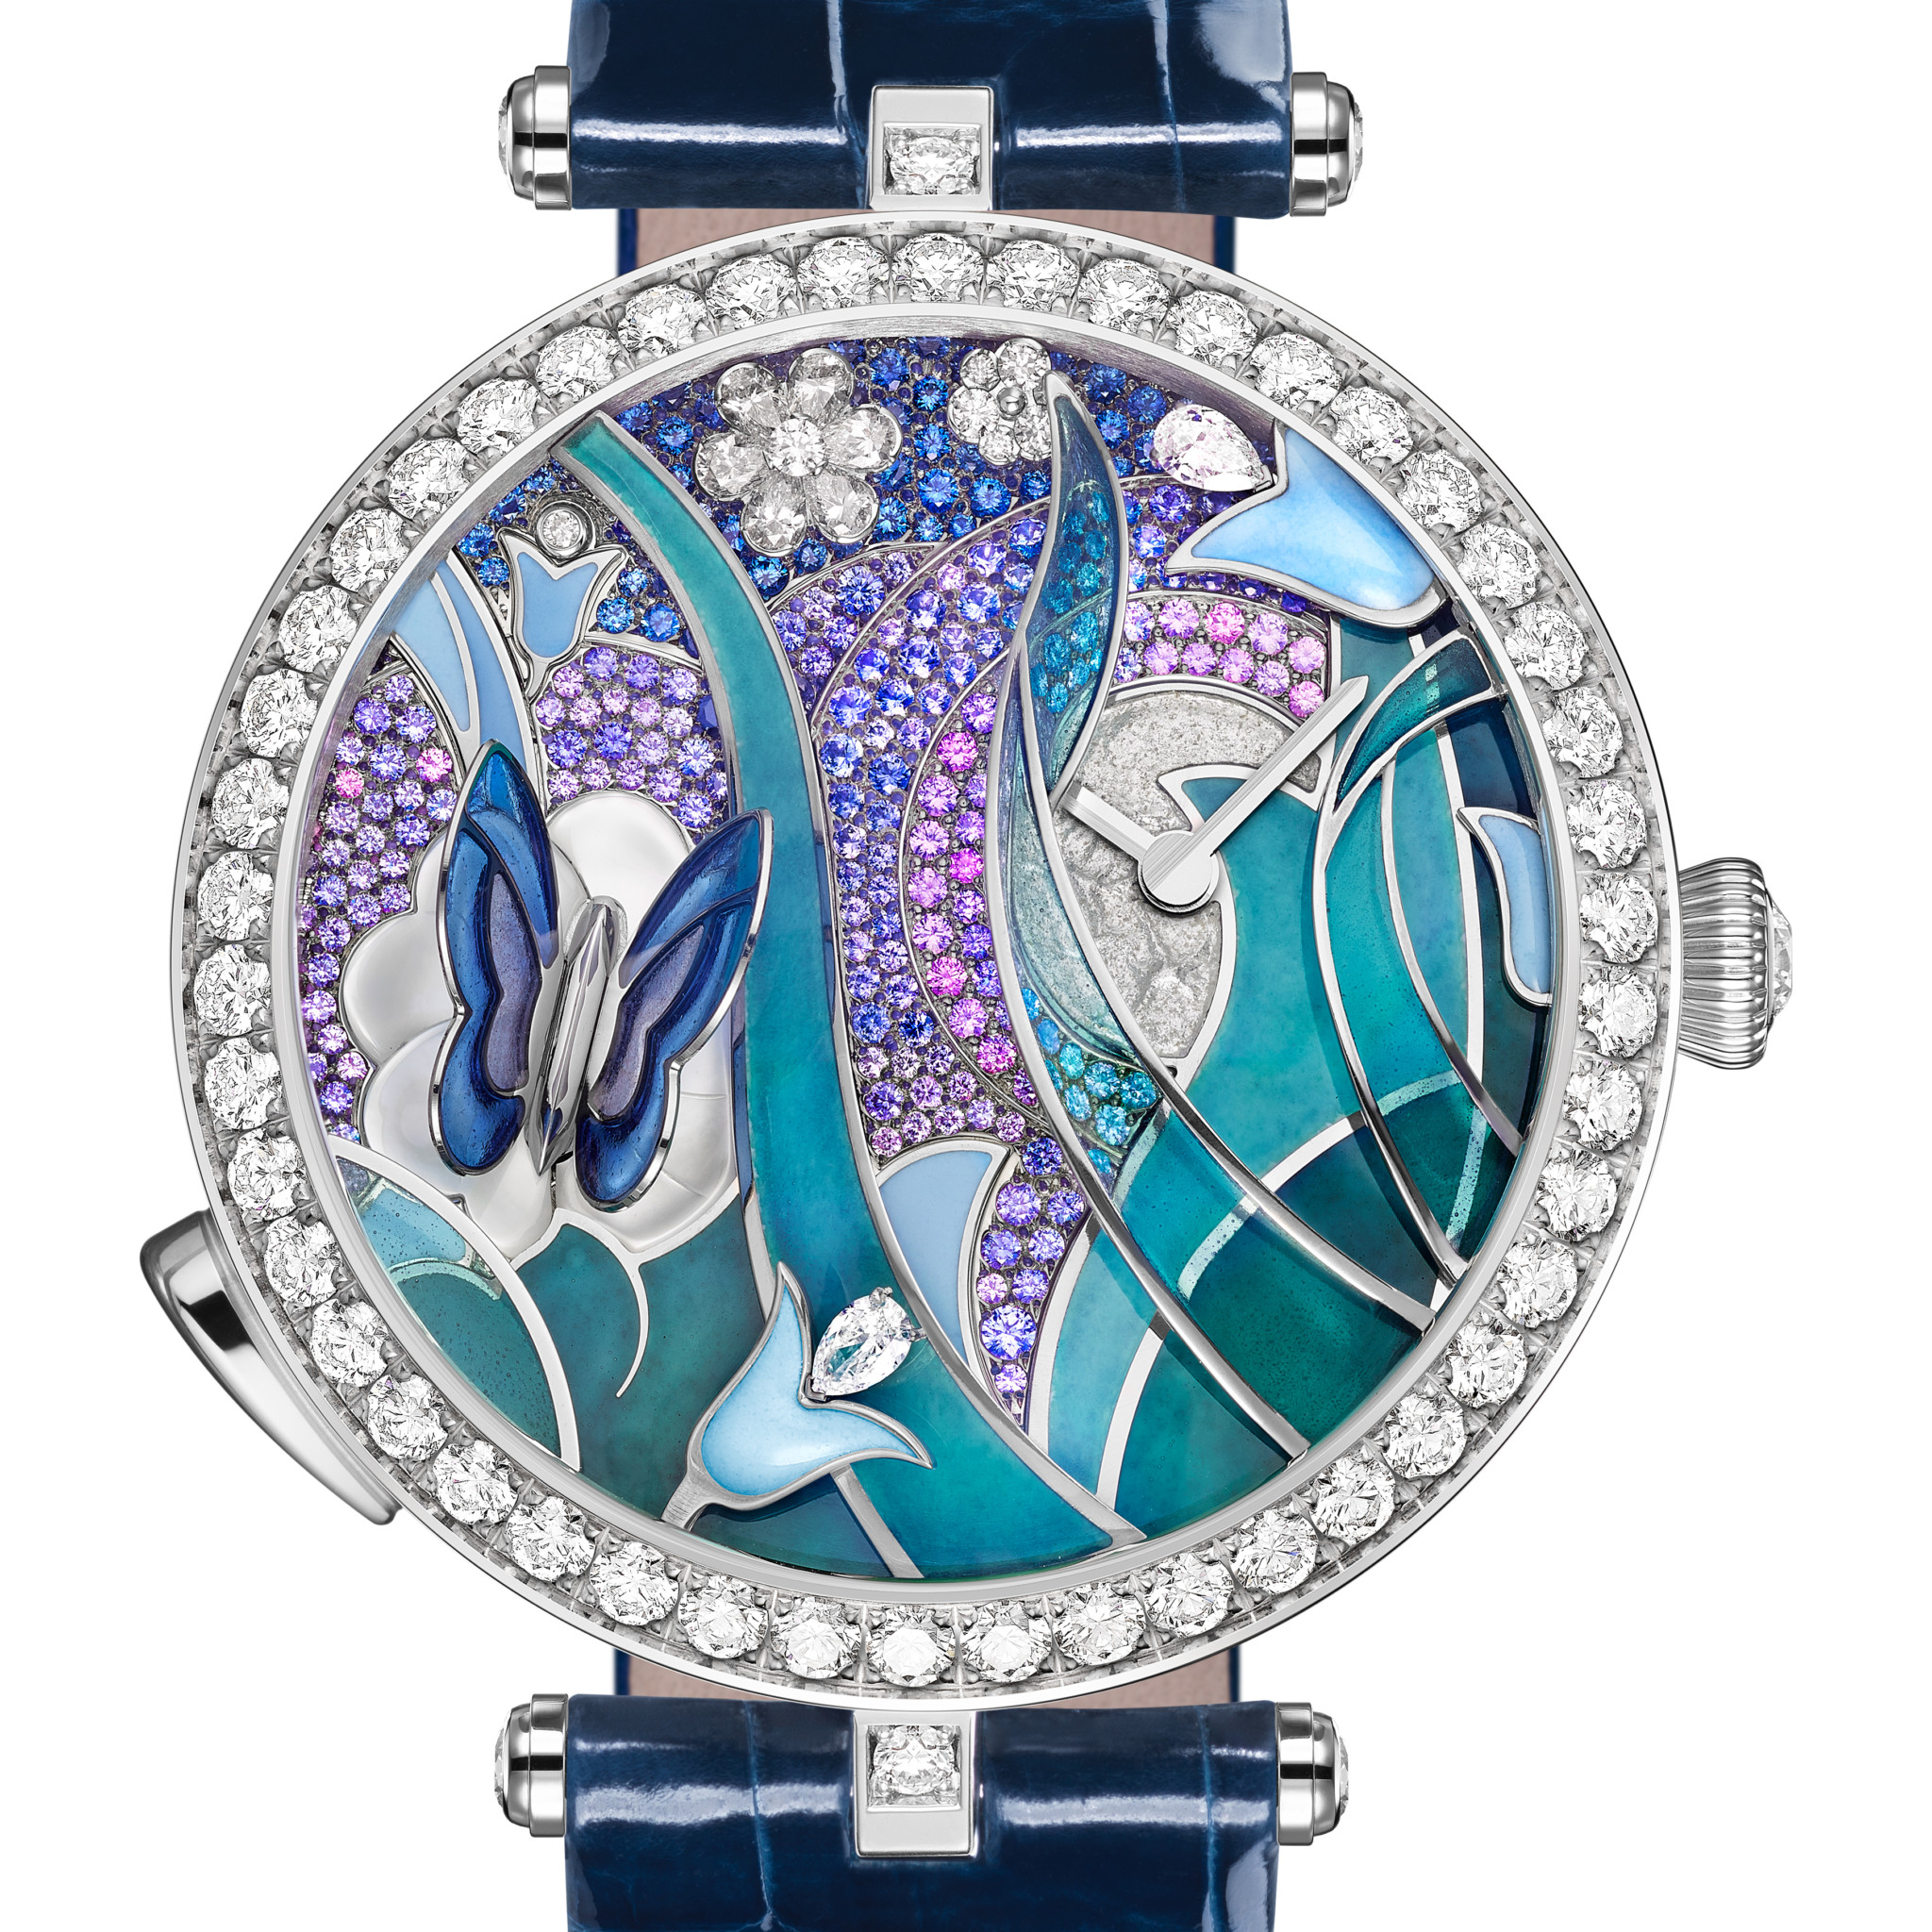 Ladies' High-Mech Watch Prize: Van Cleef & Arpels, Lady Arpels Papillon Automate.